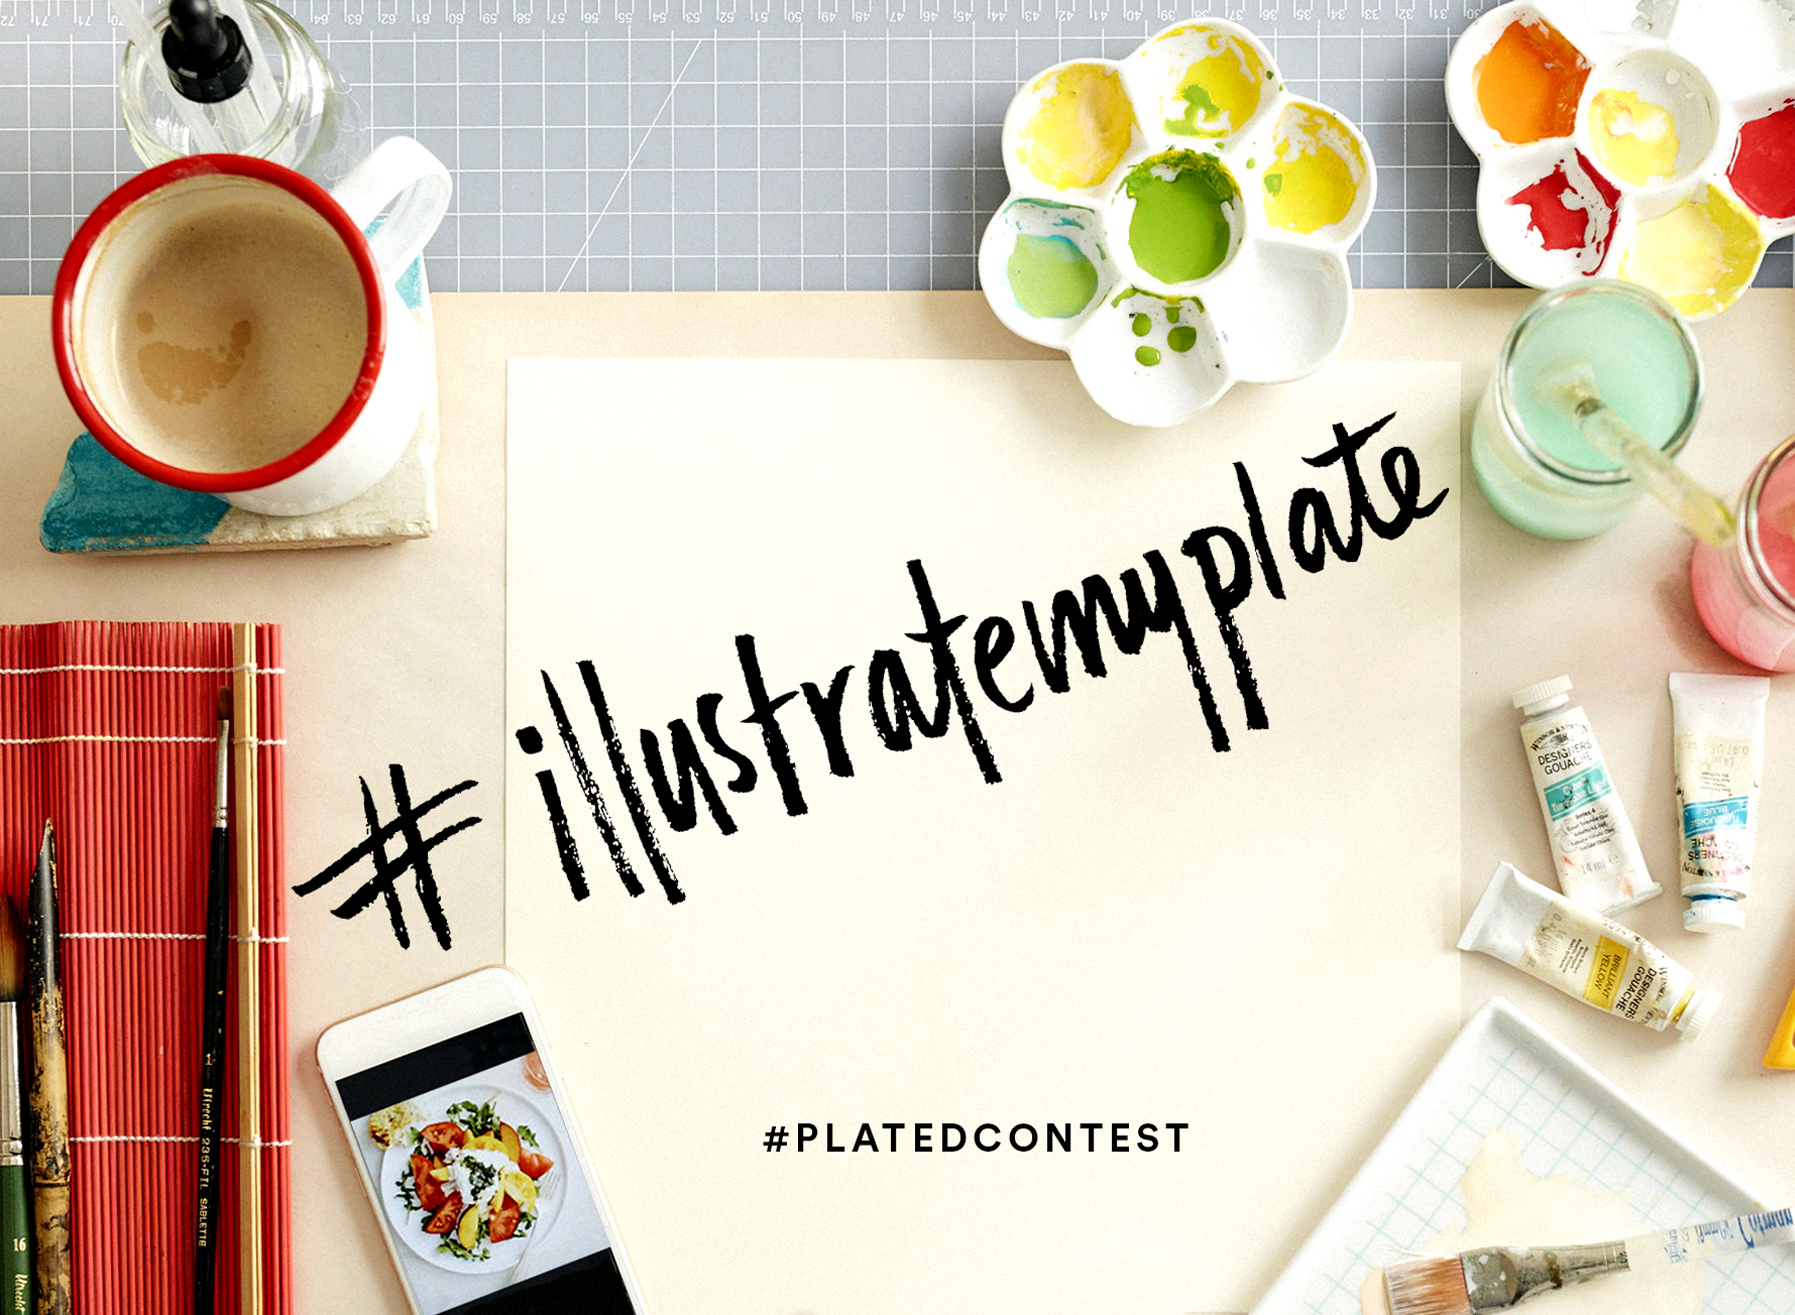 We wanted to do a fun contest for the holidays and increase engagement. Our customers and followers submitted their favorite #platedpics for a chance to get a painting of their photo if they won. This contest reinforced Plated's perspective on food as art. -